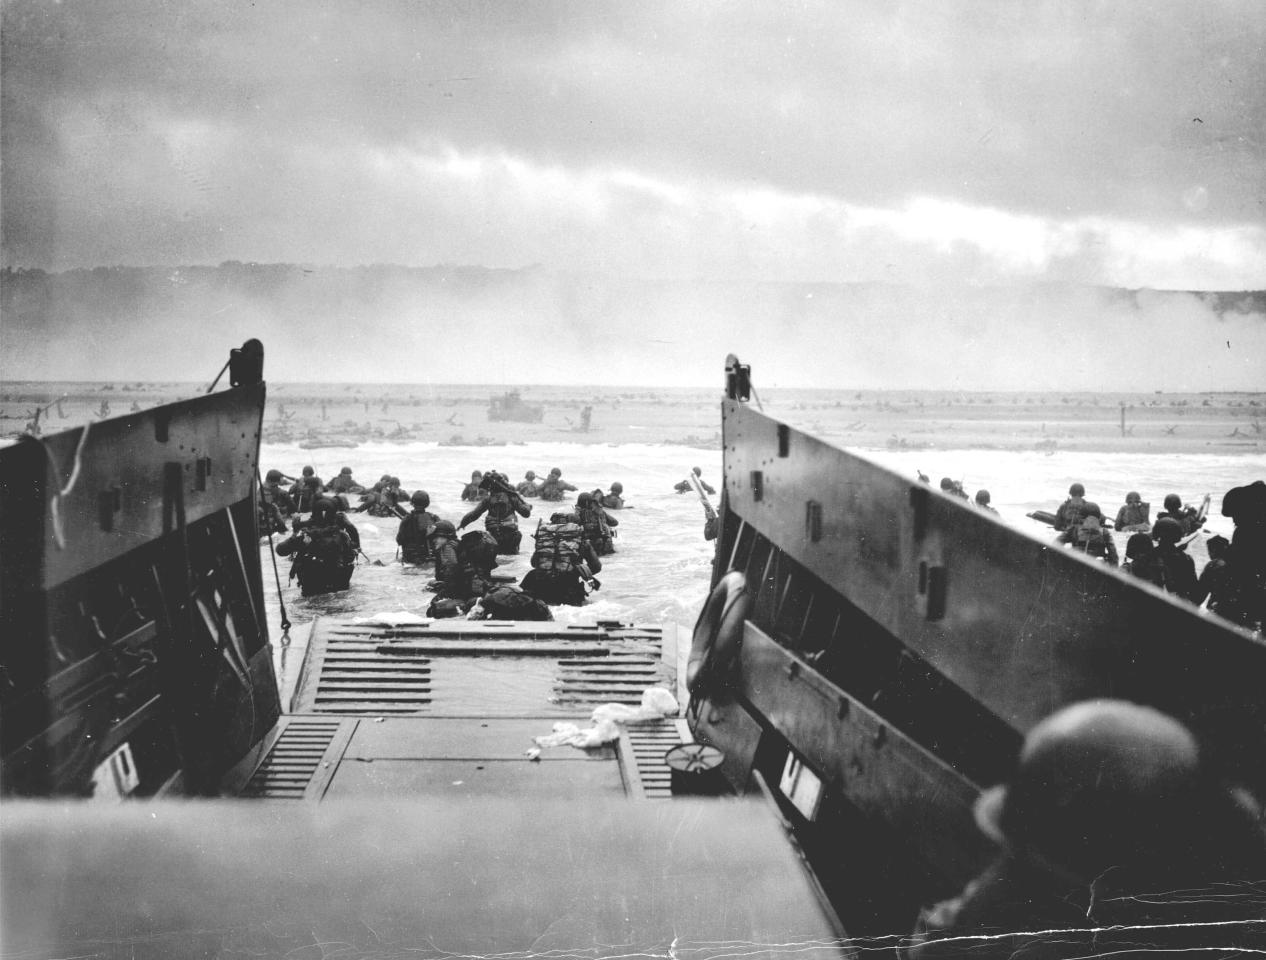 U.S. troops wade ashore from a Coast Guard landing craft at Omaha Beach during the Normandy D-Day landings near Vierville sur Mer, France, on June 6, 1944 in this handout photo provided by the US National Archives. On June 6, 1944, allied soldiers descended on the beaches of Normandy for D-Day - an operation that turned the tide of the Second World War against the Nazis, marking the beginning of the end of the conflict. Today, as many around the world prepare to commemorate the 70th anniversary of the landings, pictures of Normandy's now-touristy beaches stand in stark contrast to images taken around the time of the invasion. But while the landscape has changed, the memory of the momentous event lives on. Reuters photographer Chris Helgren compiled a series of archive pictures taken during the 1944 invasion and then went back to the same places, to photograph them as they appear today. Picture taken June 6, 1944. REUTERS/Robert F. Sargent/US National Archives/Handout via Reuters (FRANCE - Tags: ANNIVERSARY MILITARY CONFLICT) ATTENTION EDITORS - THIS PICTURE WAS PROVIDED BY A THIRD PARTY. REUTERS IS UNABLE TO INDEPENDENTLY VERIFY THE AUTHENTICITY, CONTENT, LOCATION OR DATE OF THIS IMAGE. THIS PICTURE IS DISTRIBUTED EXACTLY AS RECEIVED BY REUTERS, AS A SERVICE TO CLIENTS. FOR EDITORIAL USE ONLY. NOT FOR SALE FOR MARKETING OR ADVERTISING CAMPAIGNS. 